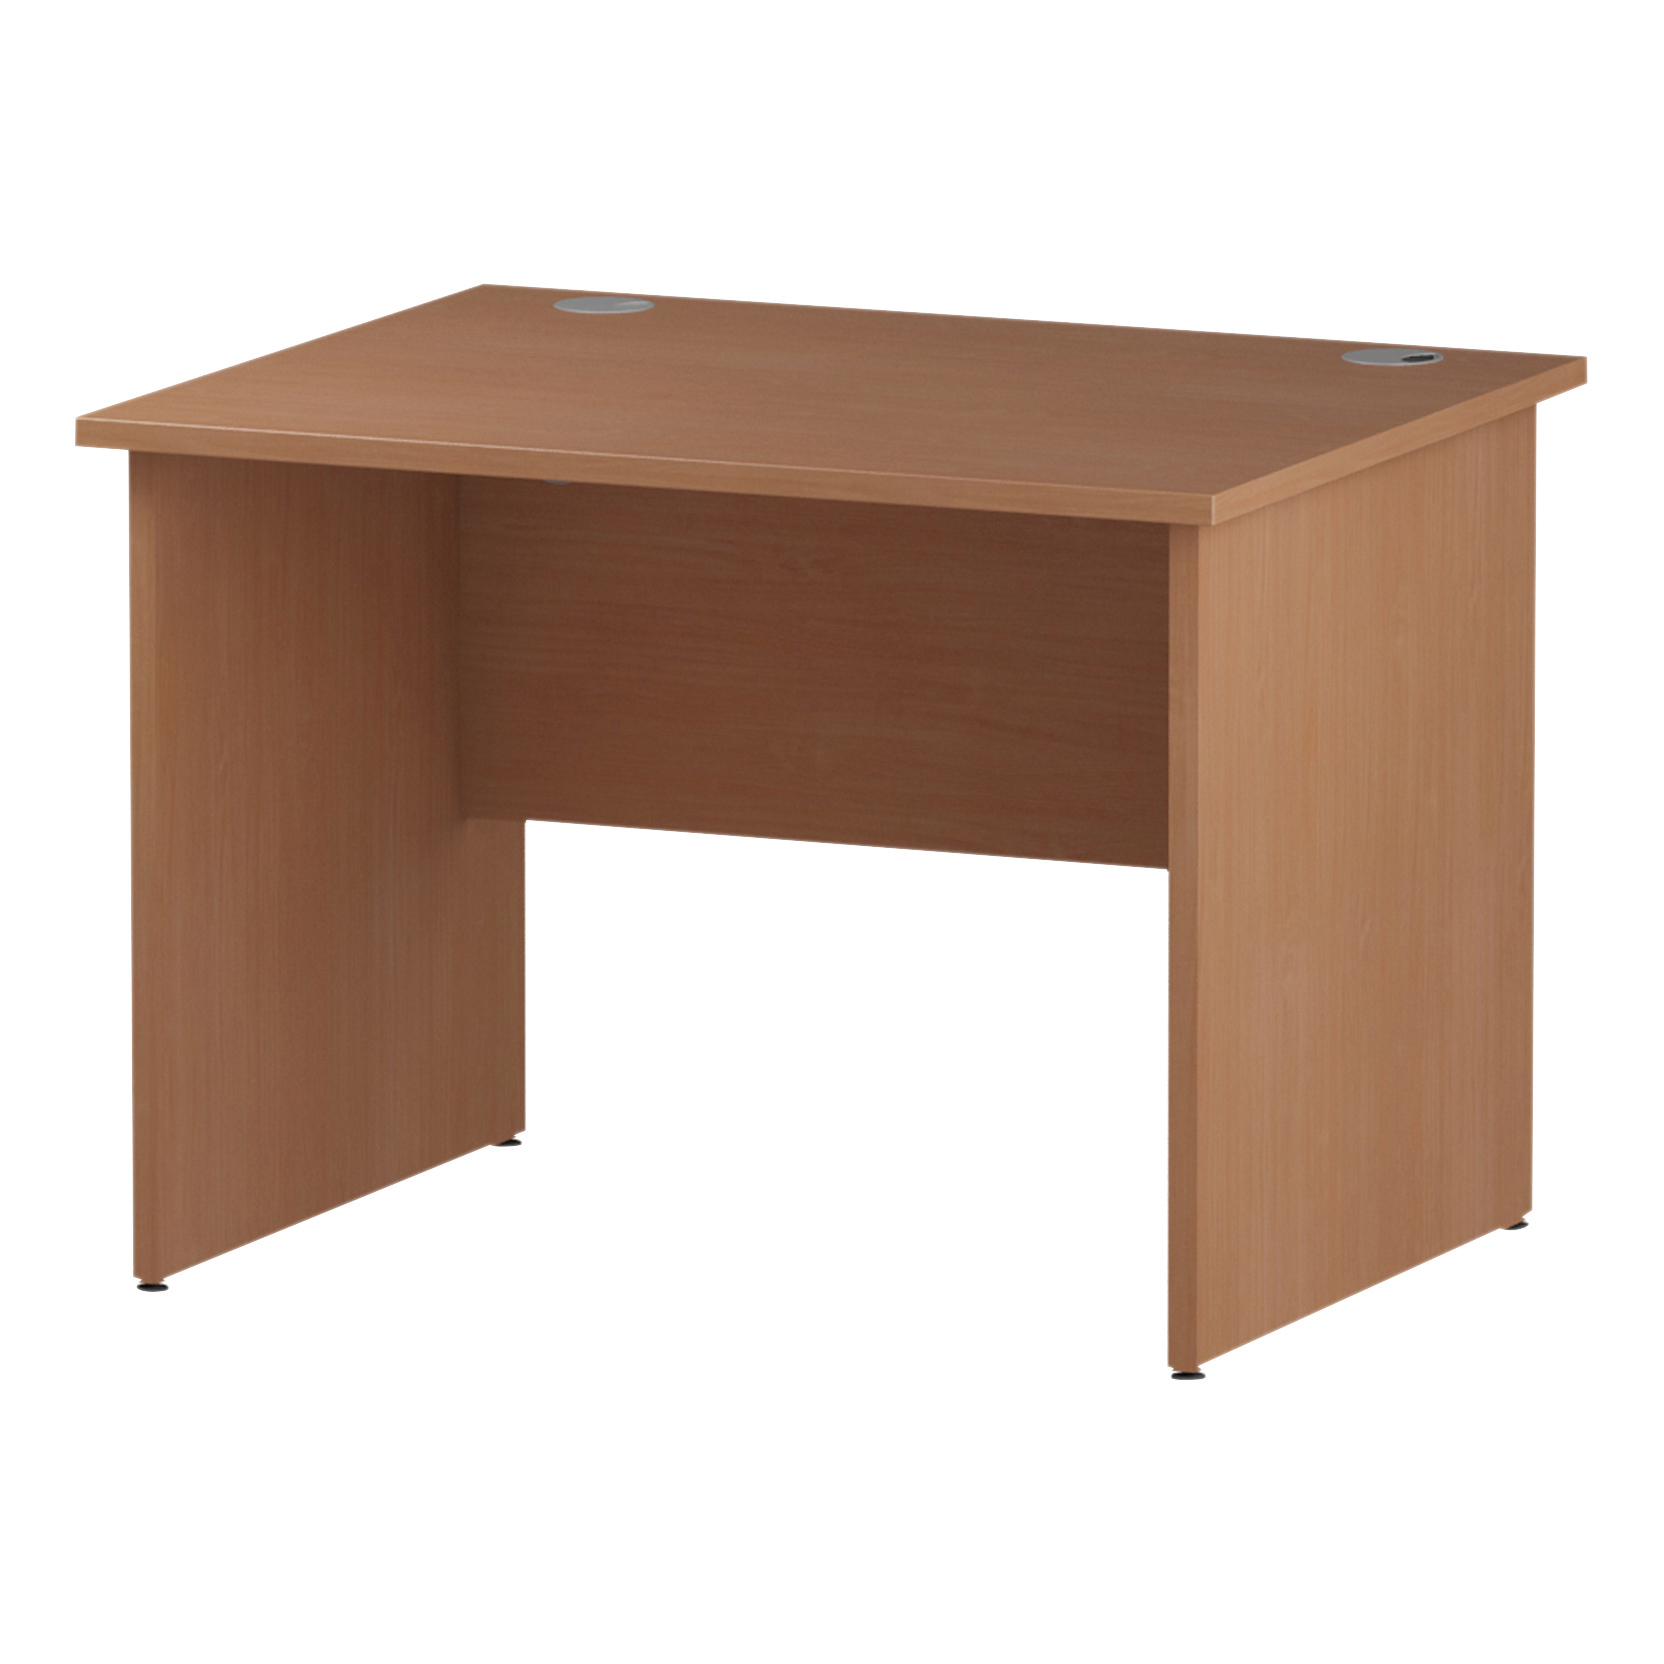 Trexus Rectangular Desk Panel End Leg 1000x800mm Beech Ref I000370